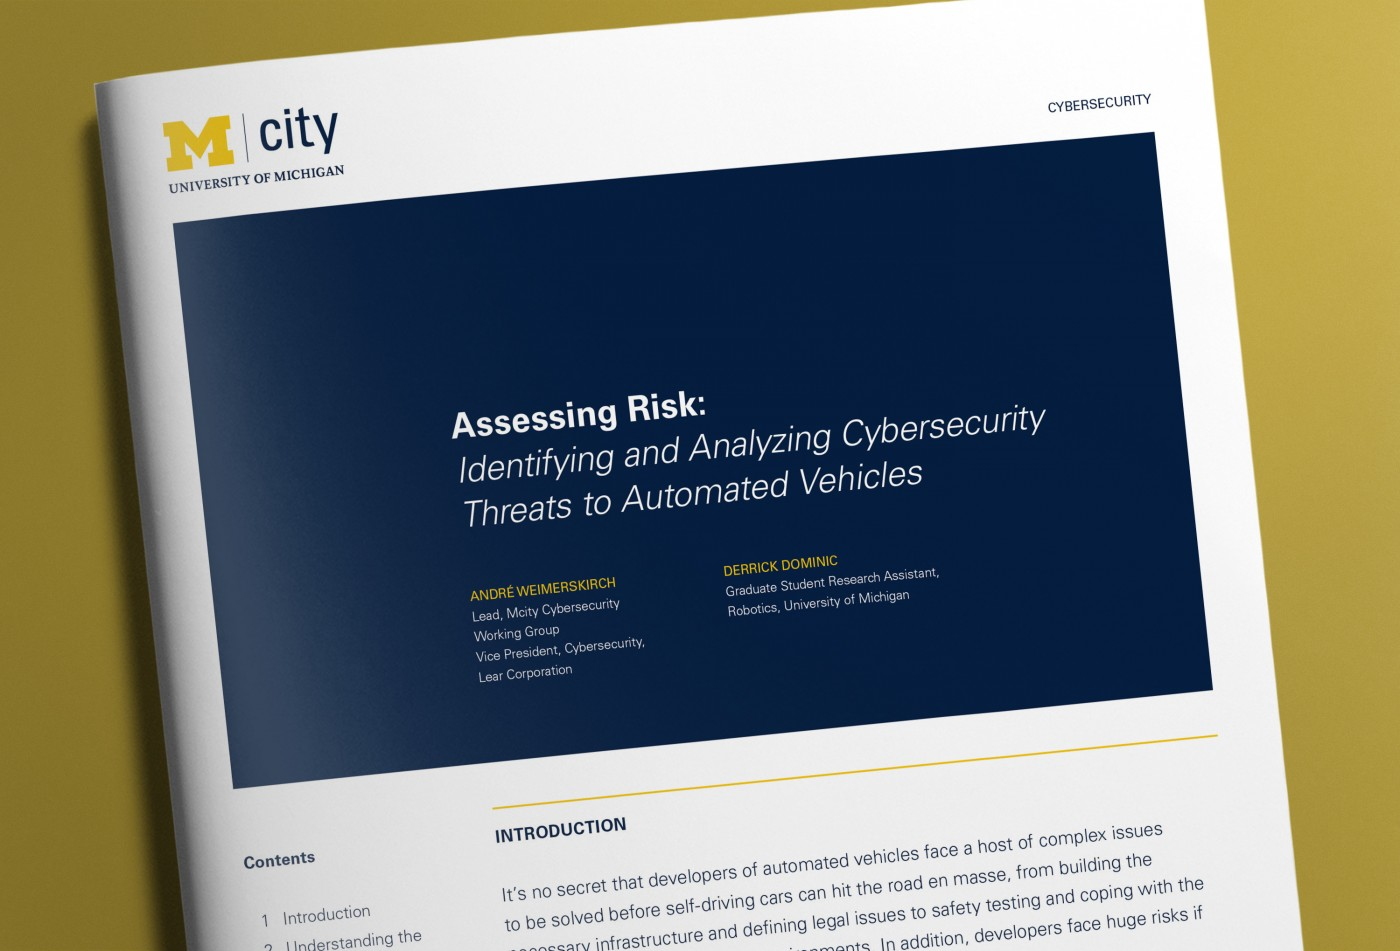 012 Cyber Security Research Paper Example Whitepaper Cybersecurity Dreaded 1400